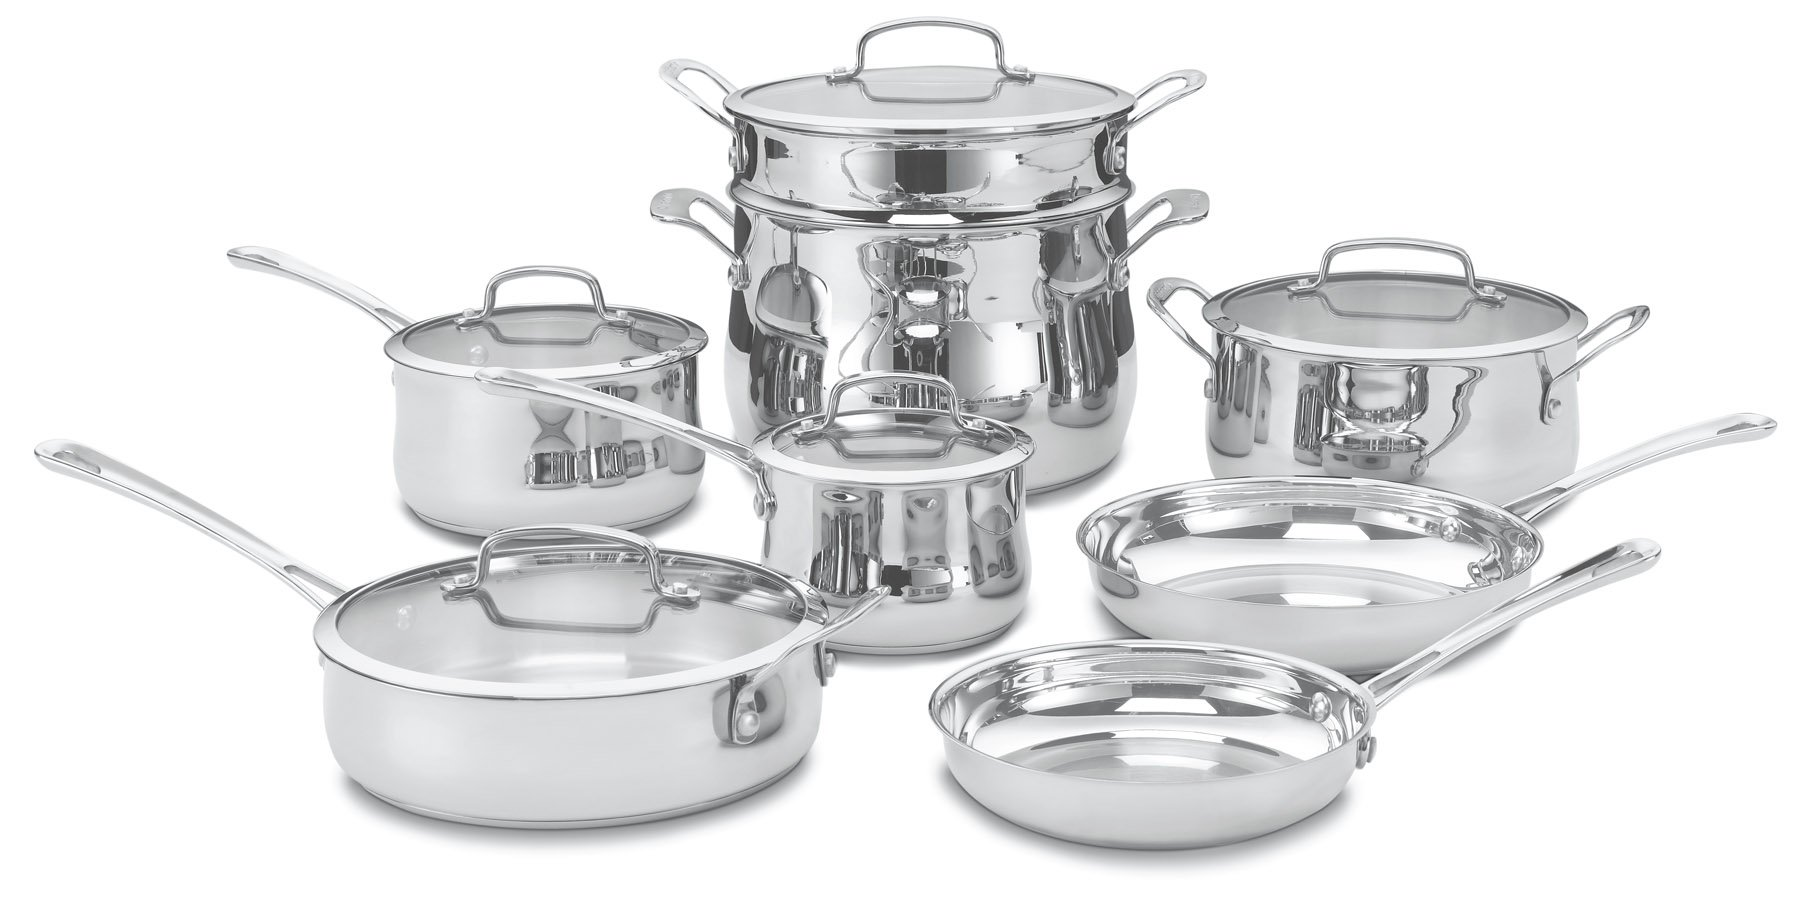 Cuisinart 44-13 Contour Stainless 13-Piece Cookware Set by Cuisinart (Image #1)